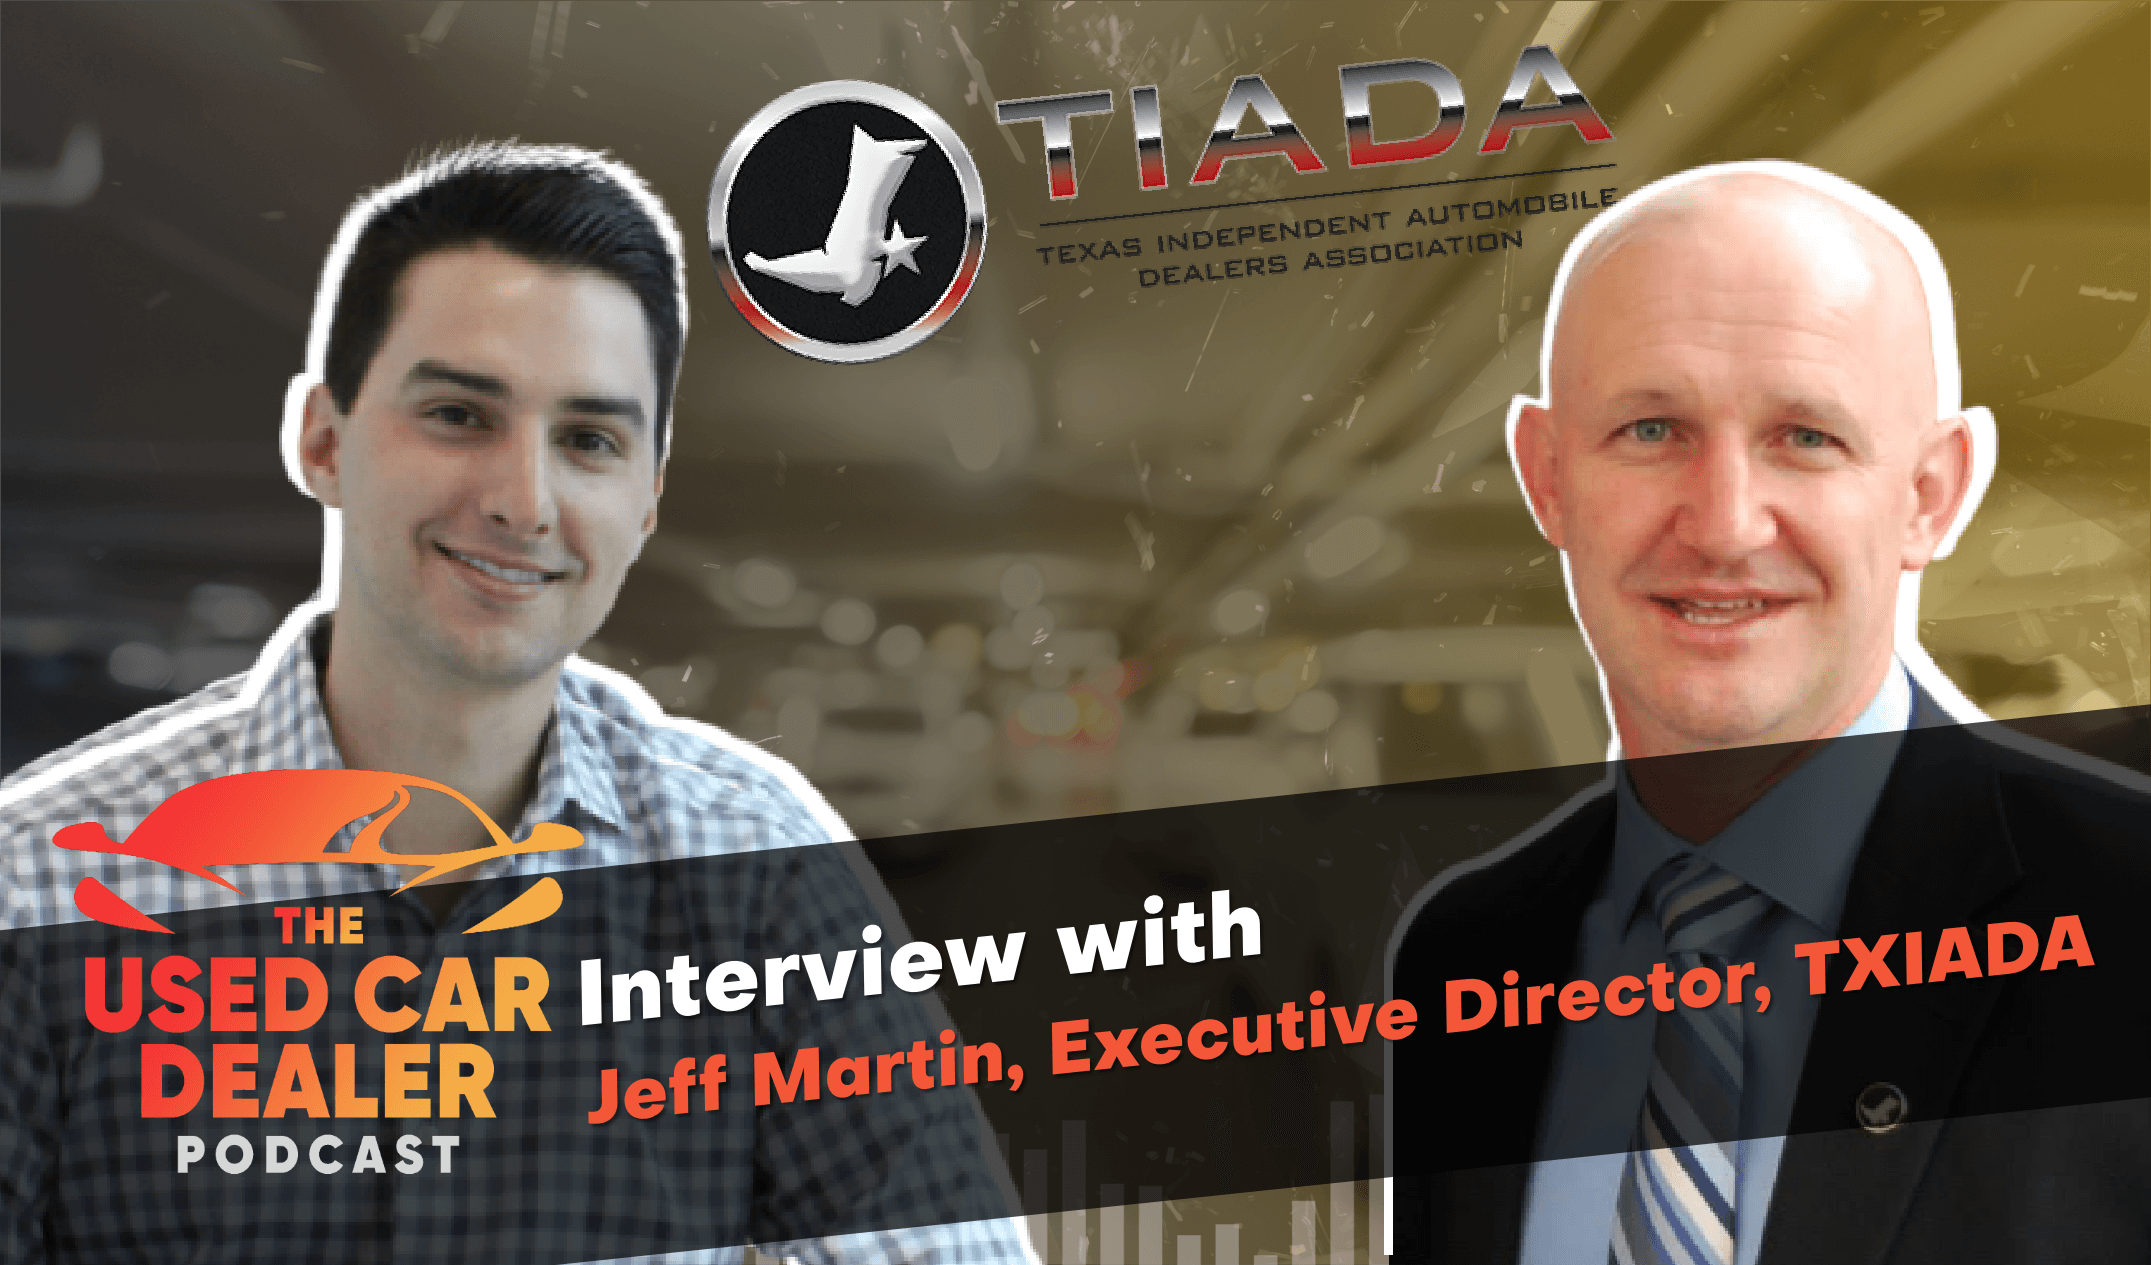 Interview w/ director of TXIADA on importance of dealer associations